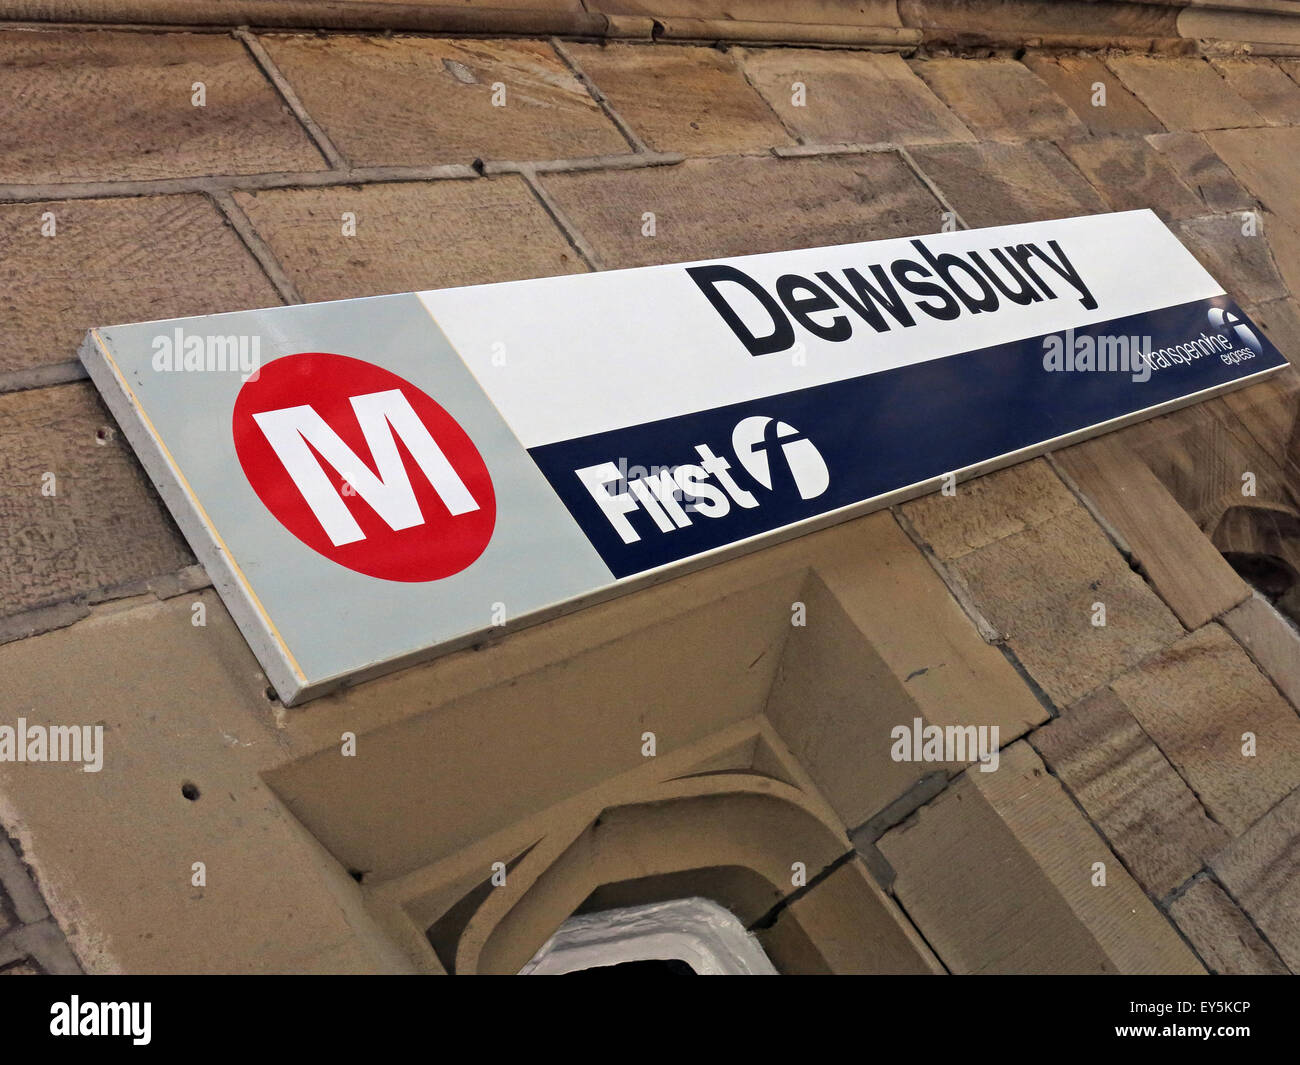 Dewsbury Railway Station Sign, Kirklees, Huddersfield,West Yorkshire,England,UK - Stock Image